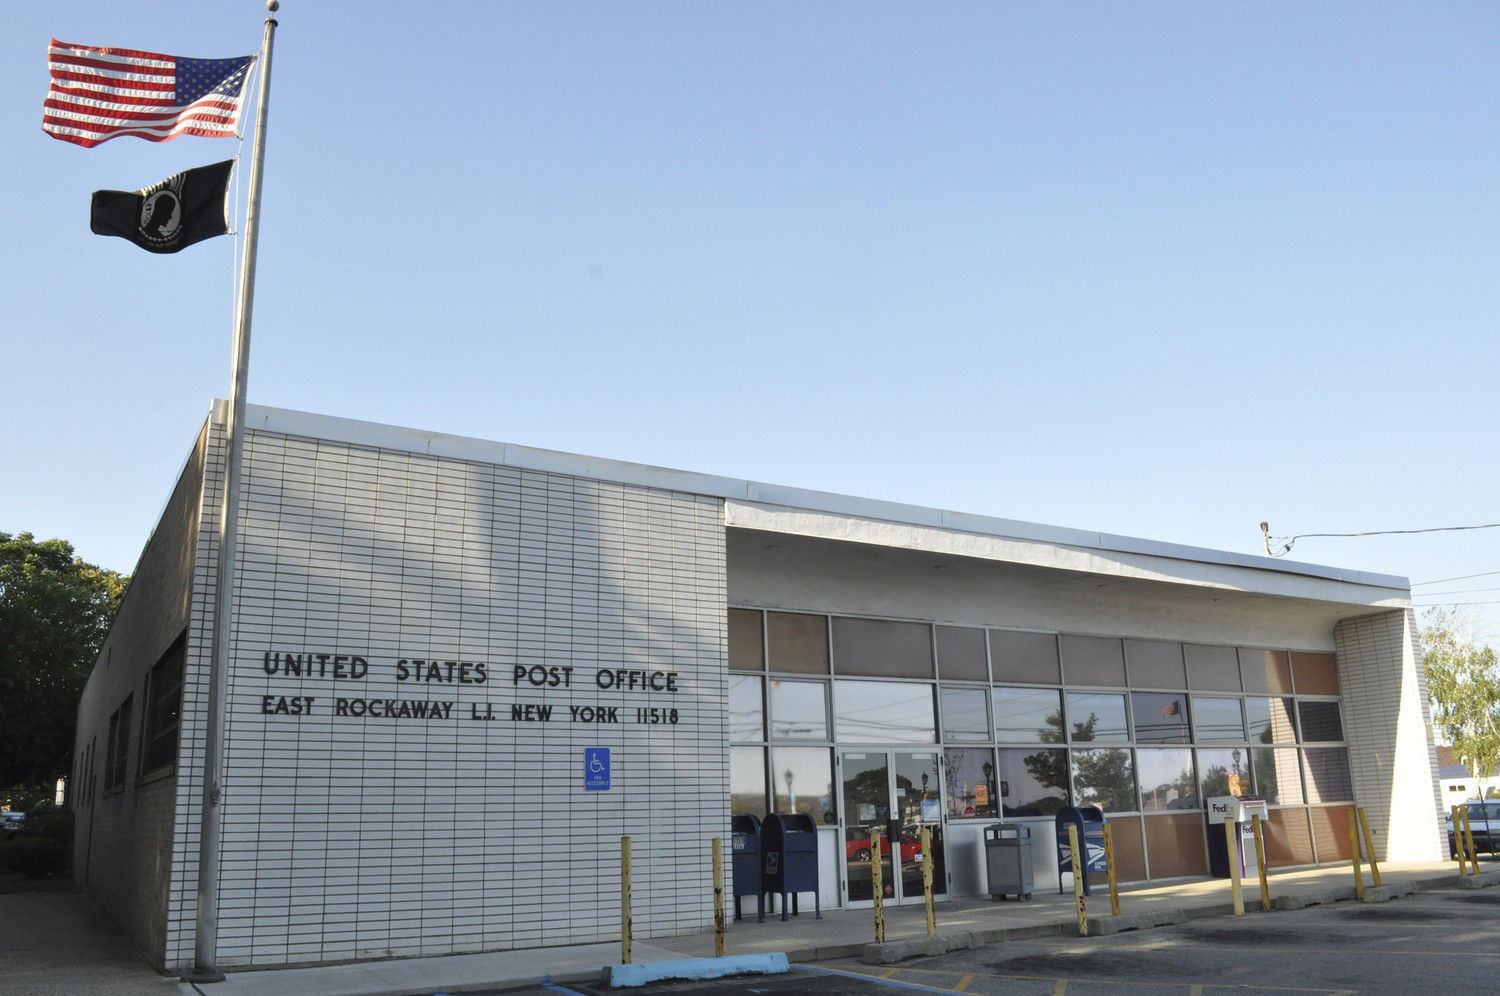 Residents near the border of Lynbrook and East Rockaway have had issues getting their mail because of a change in post office policy.